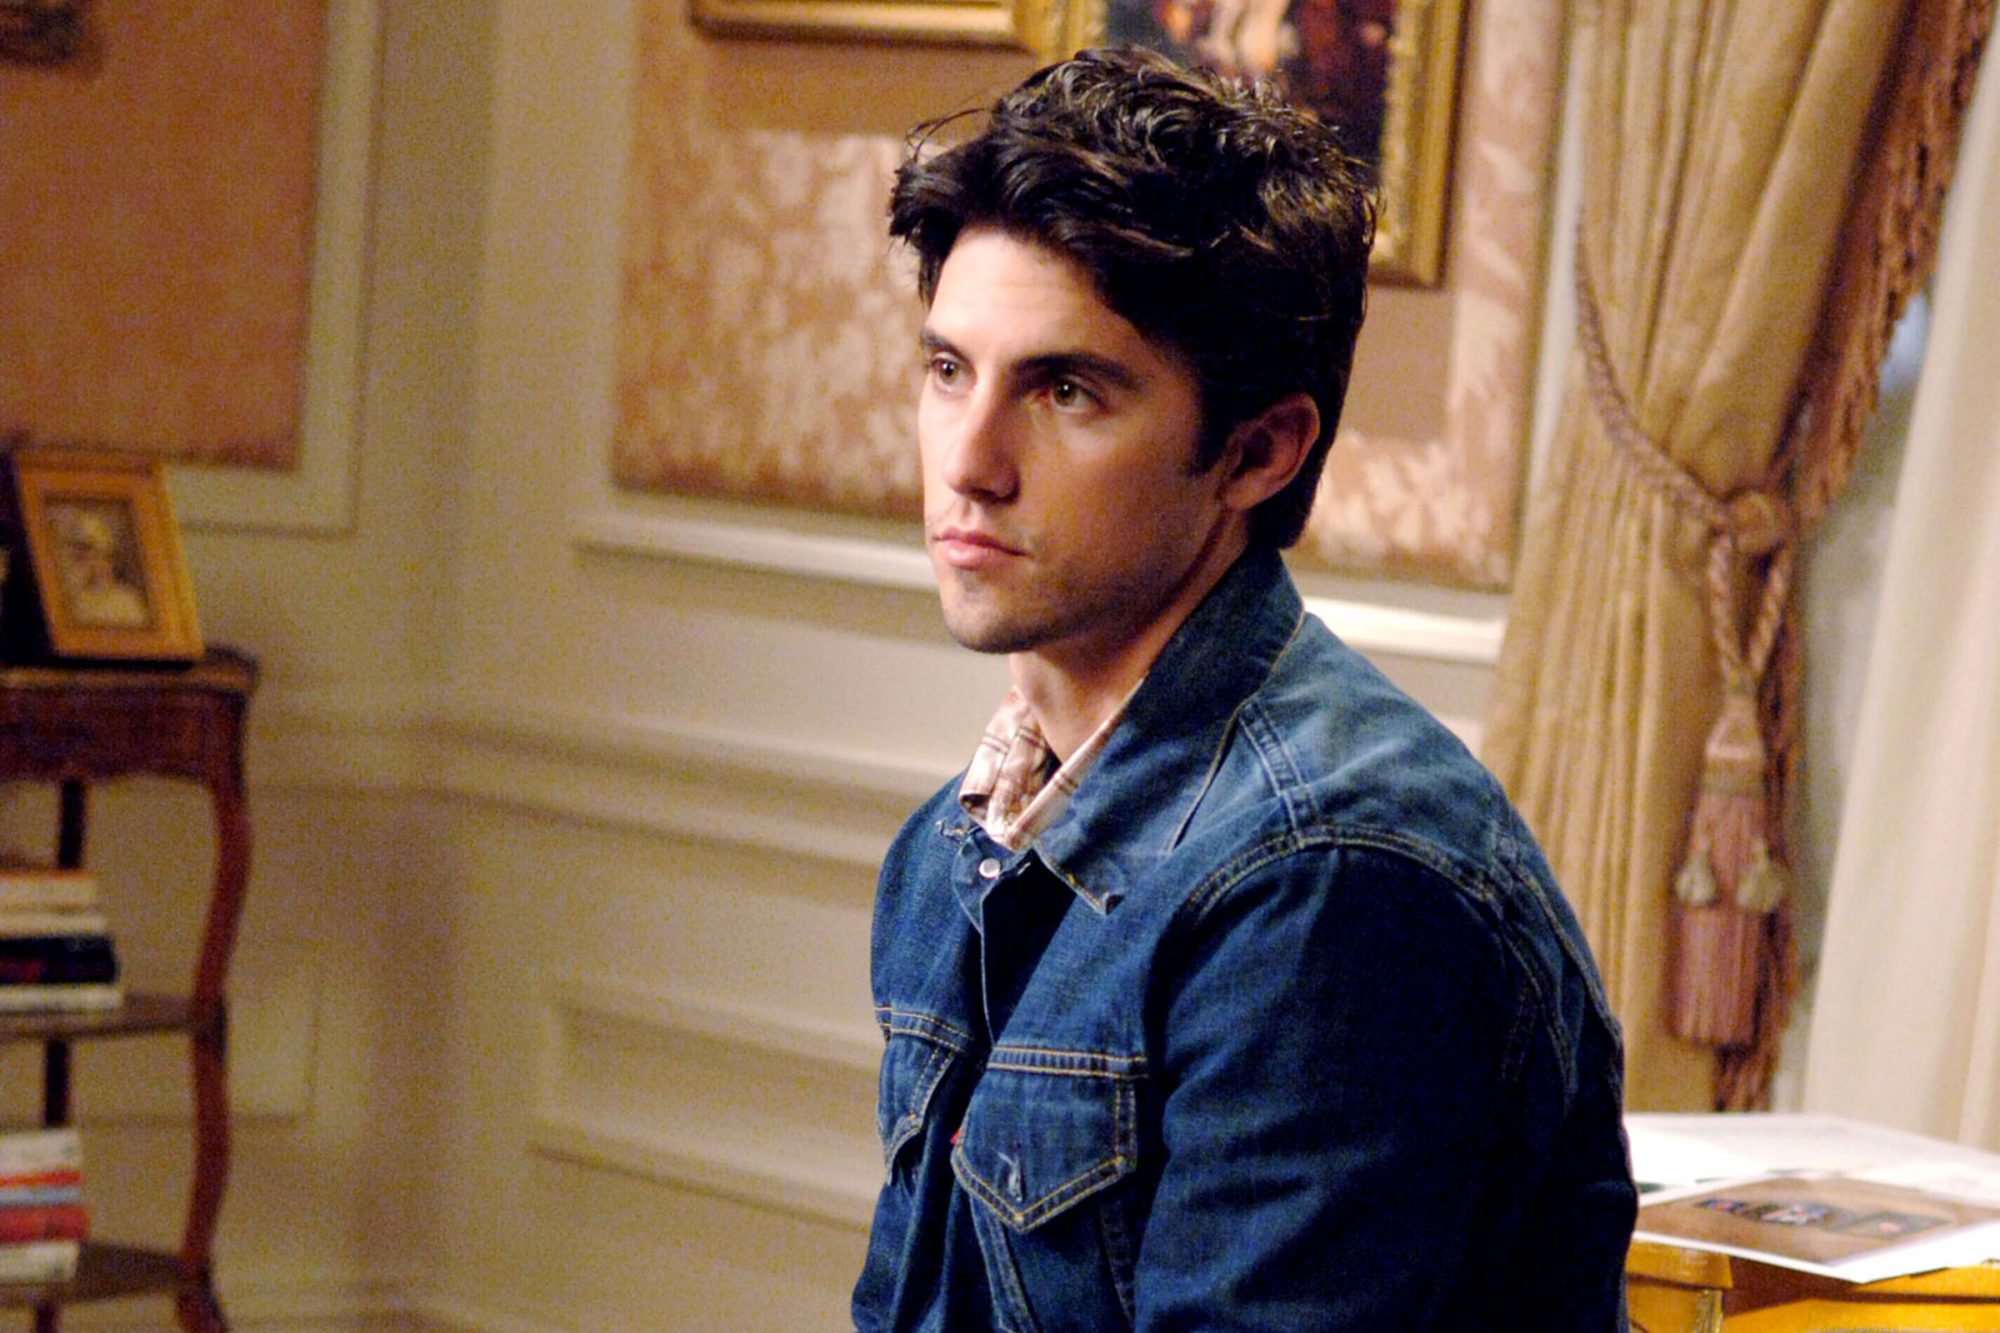 GILMORE GIRLS, Milo Ventimiglia, 'Let Me Hear Your Balailakas Ringing Out' (Season 6, aired November